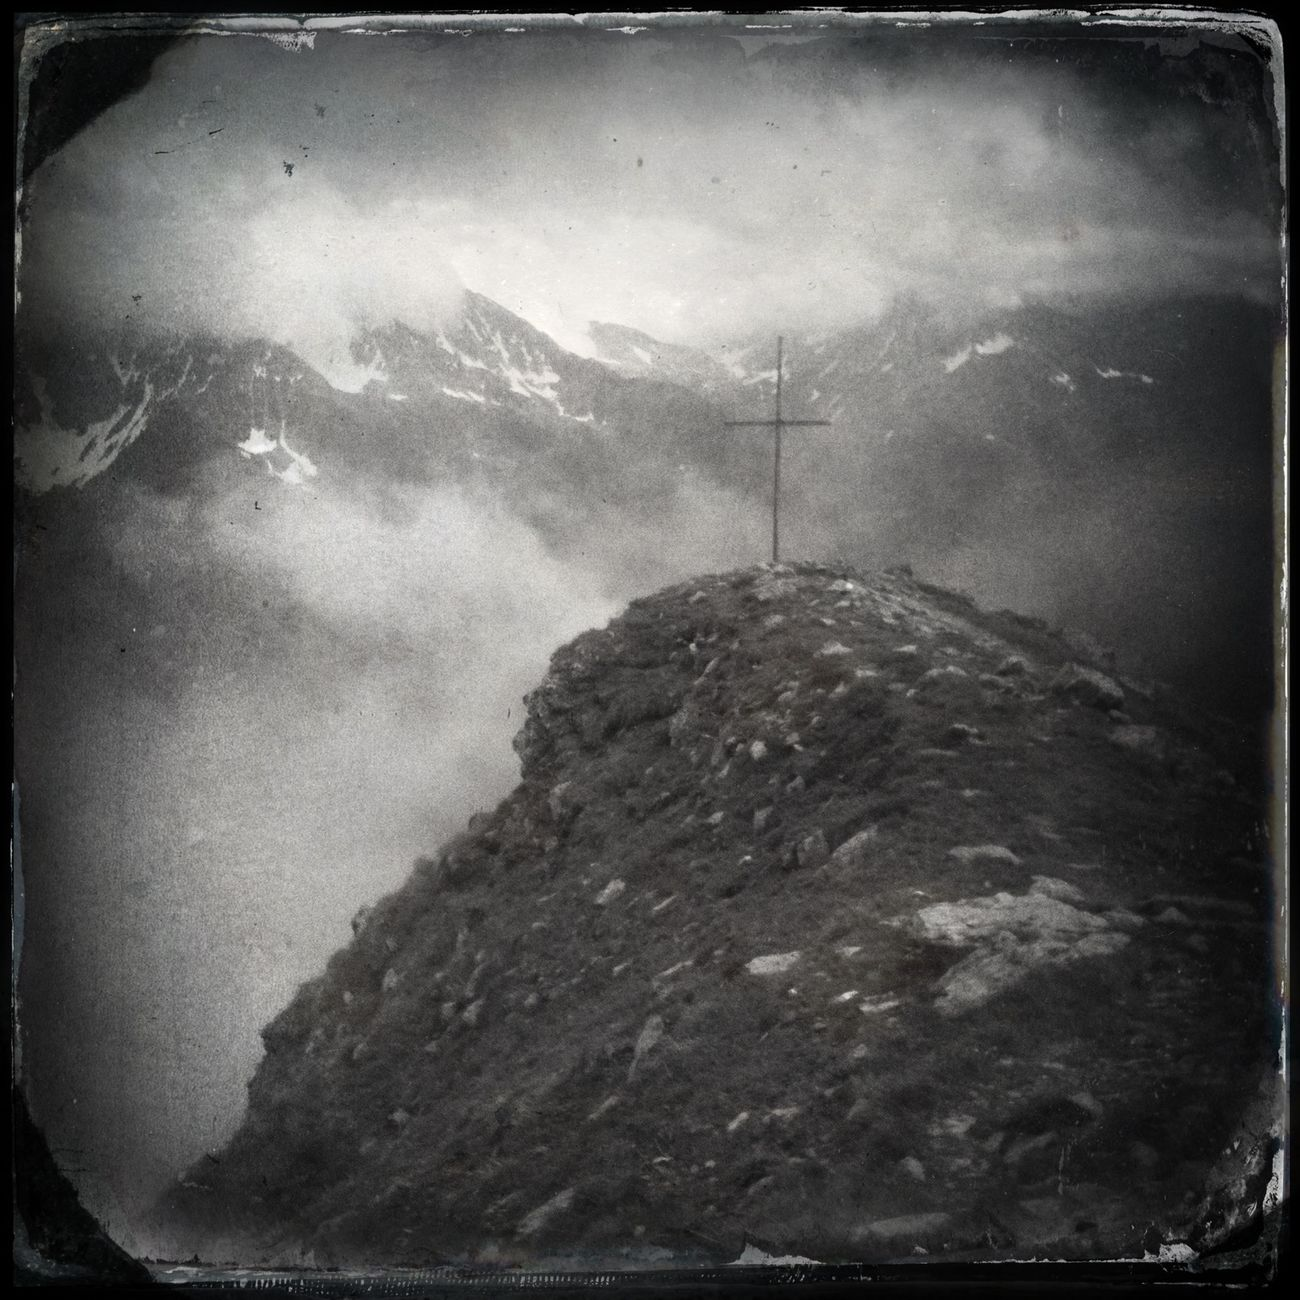 The cross on the summit of Mt. Peilstein - Il Sasso (2530 m) Blackandwhite Hipstamatic The_guido